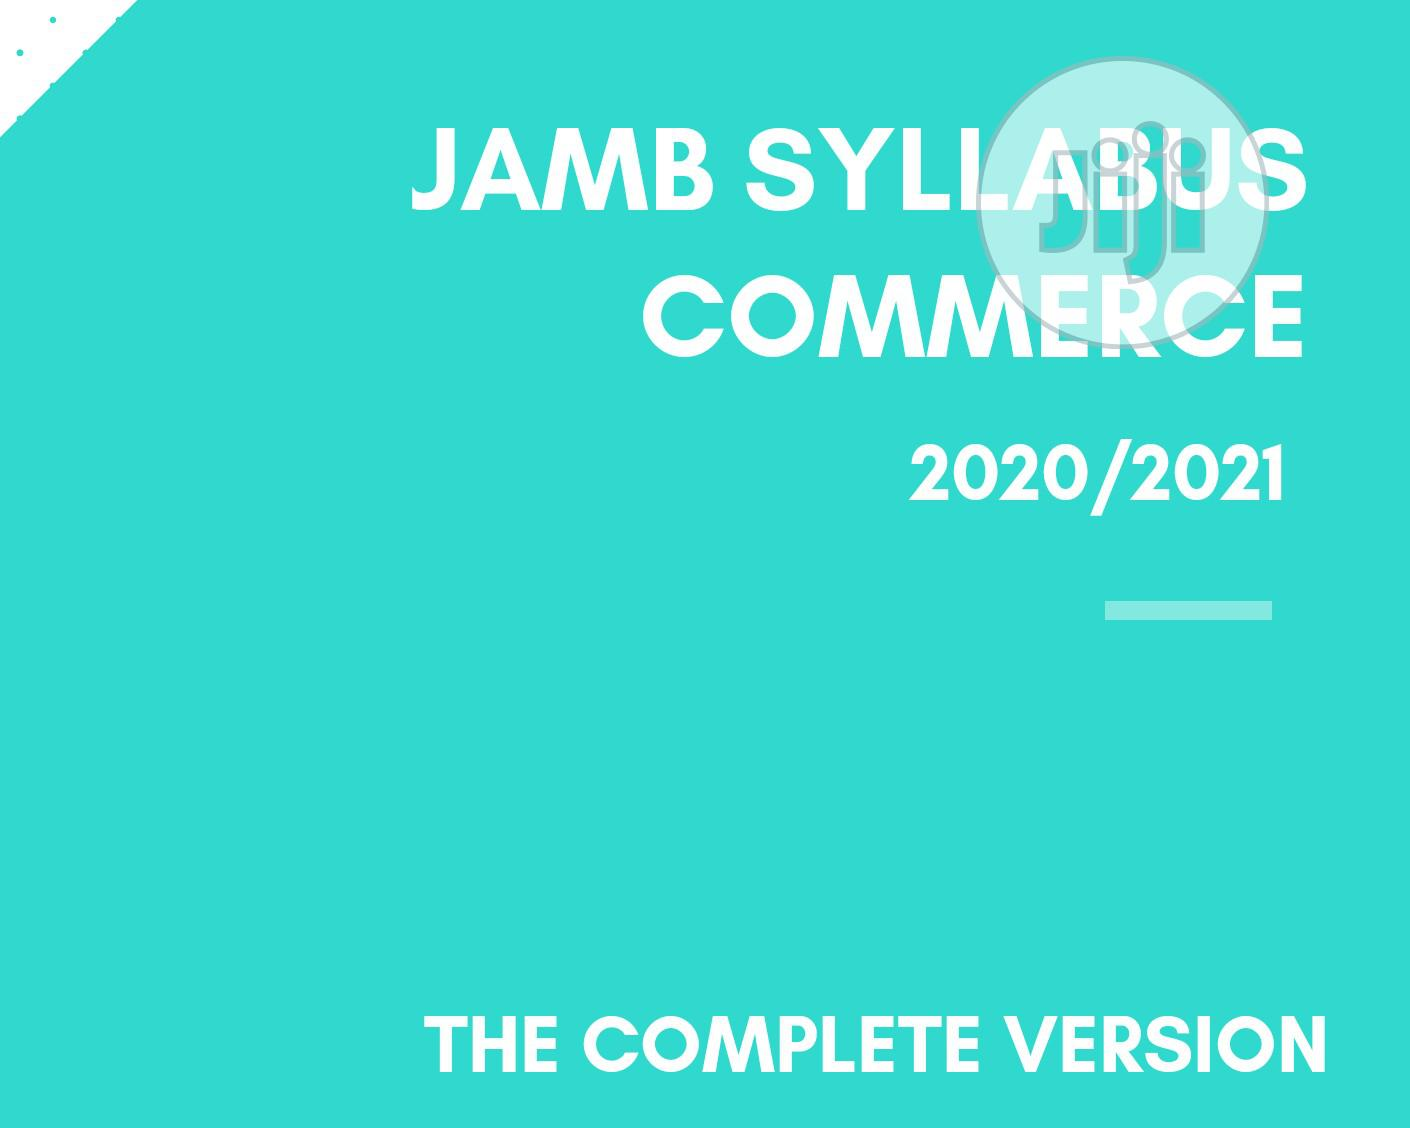 Archive: JAMB SYLLABUS COMMERCE: The Complete Version